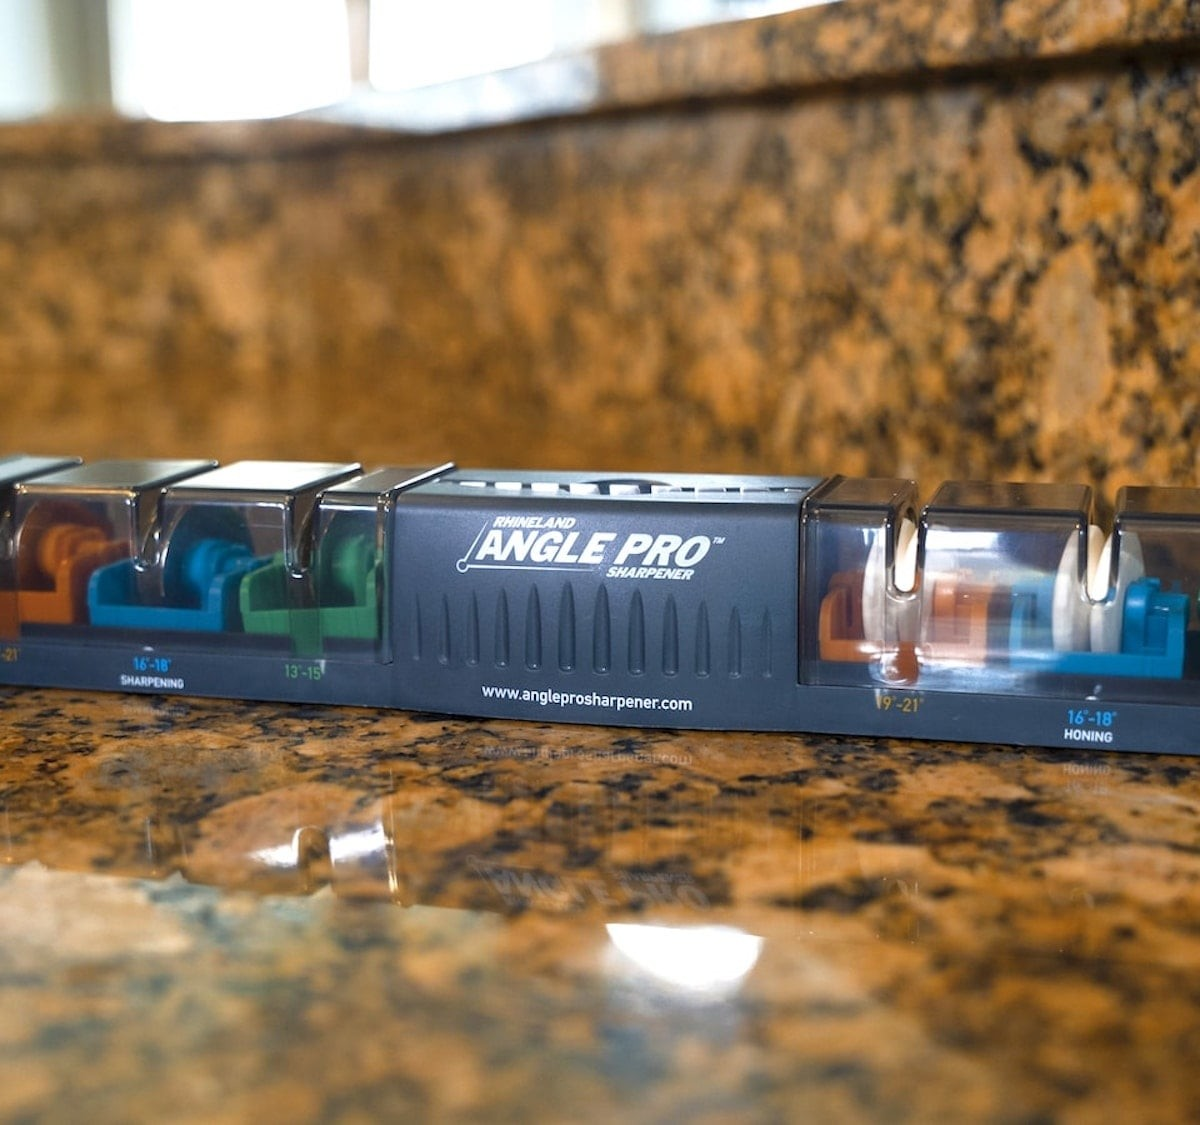 This new knife sharpener puts the right angle on any knife thumbnail